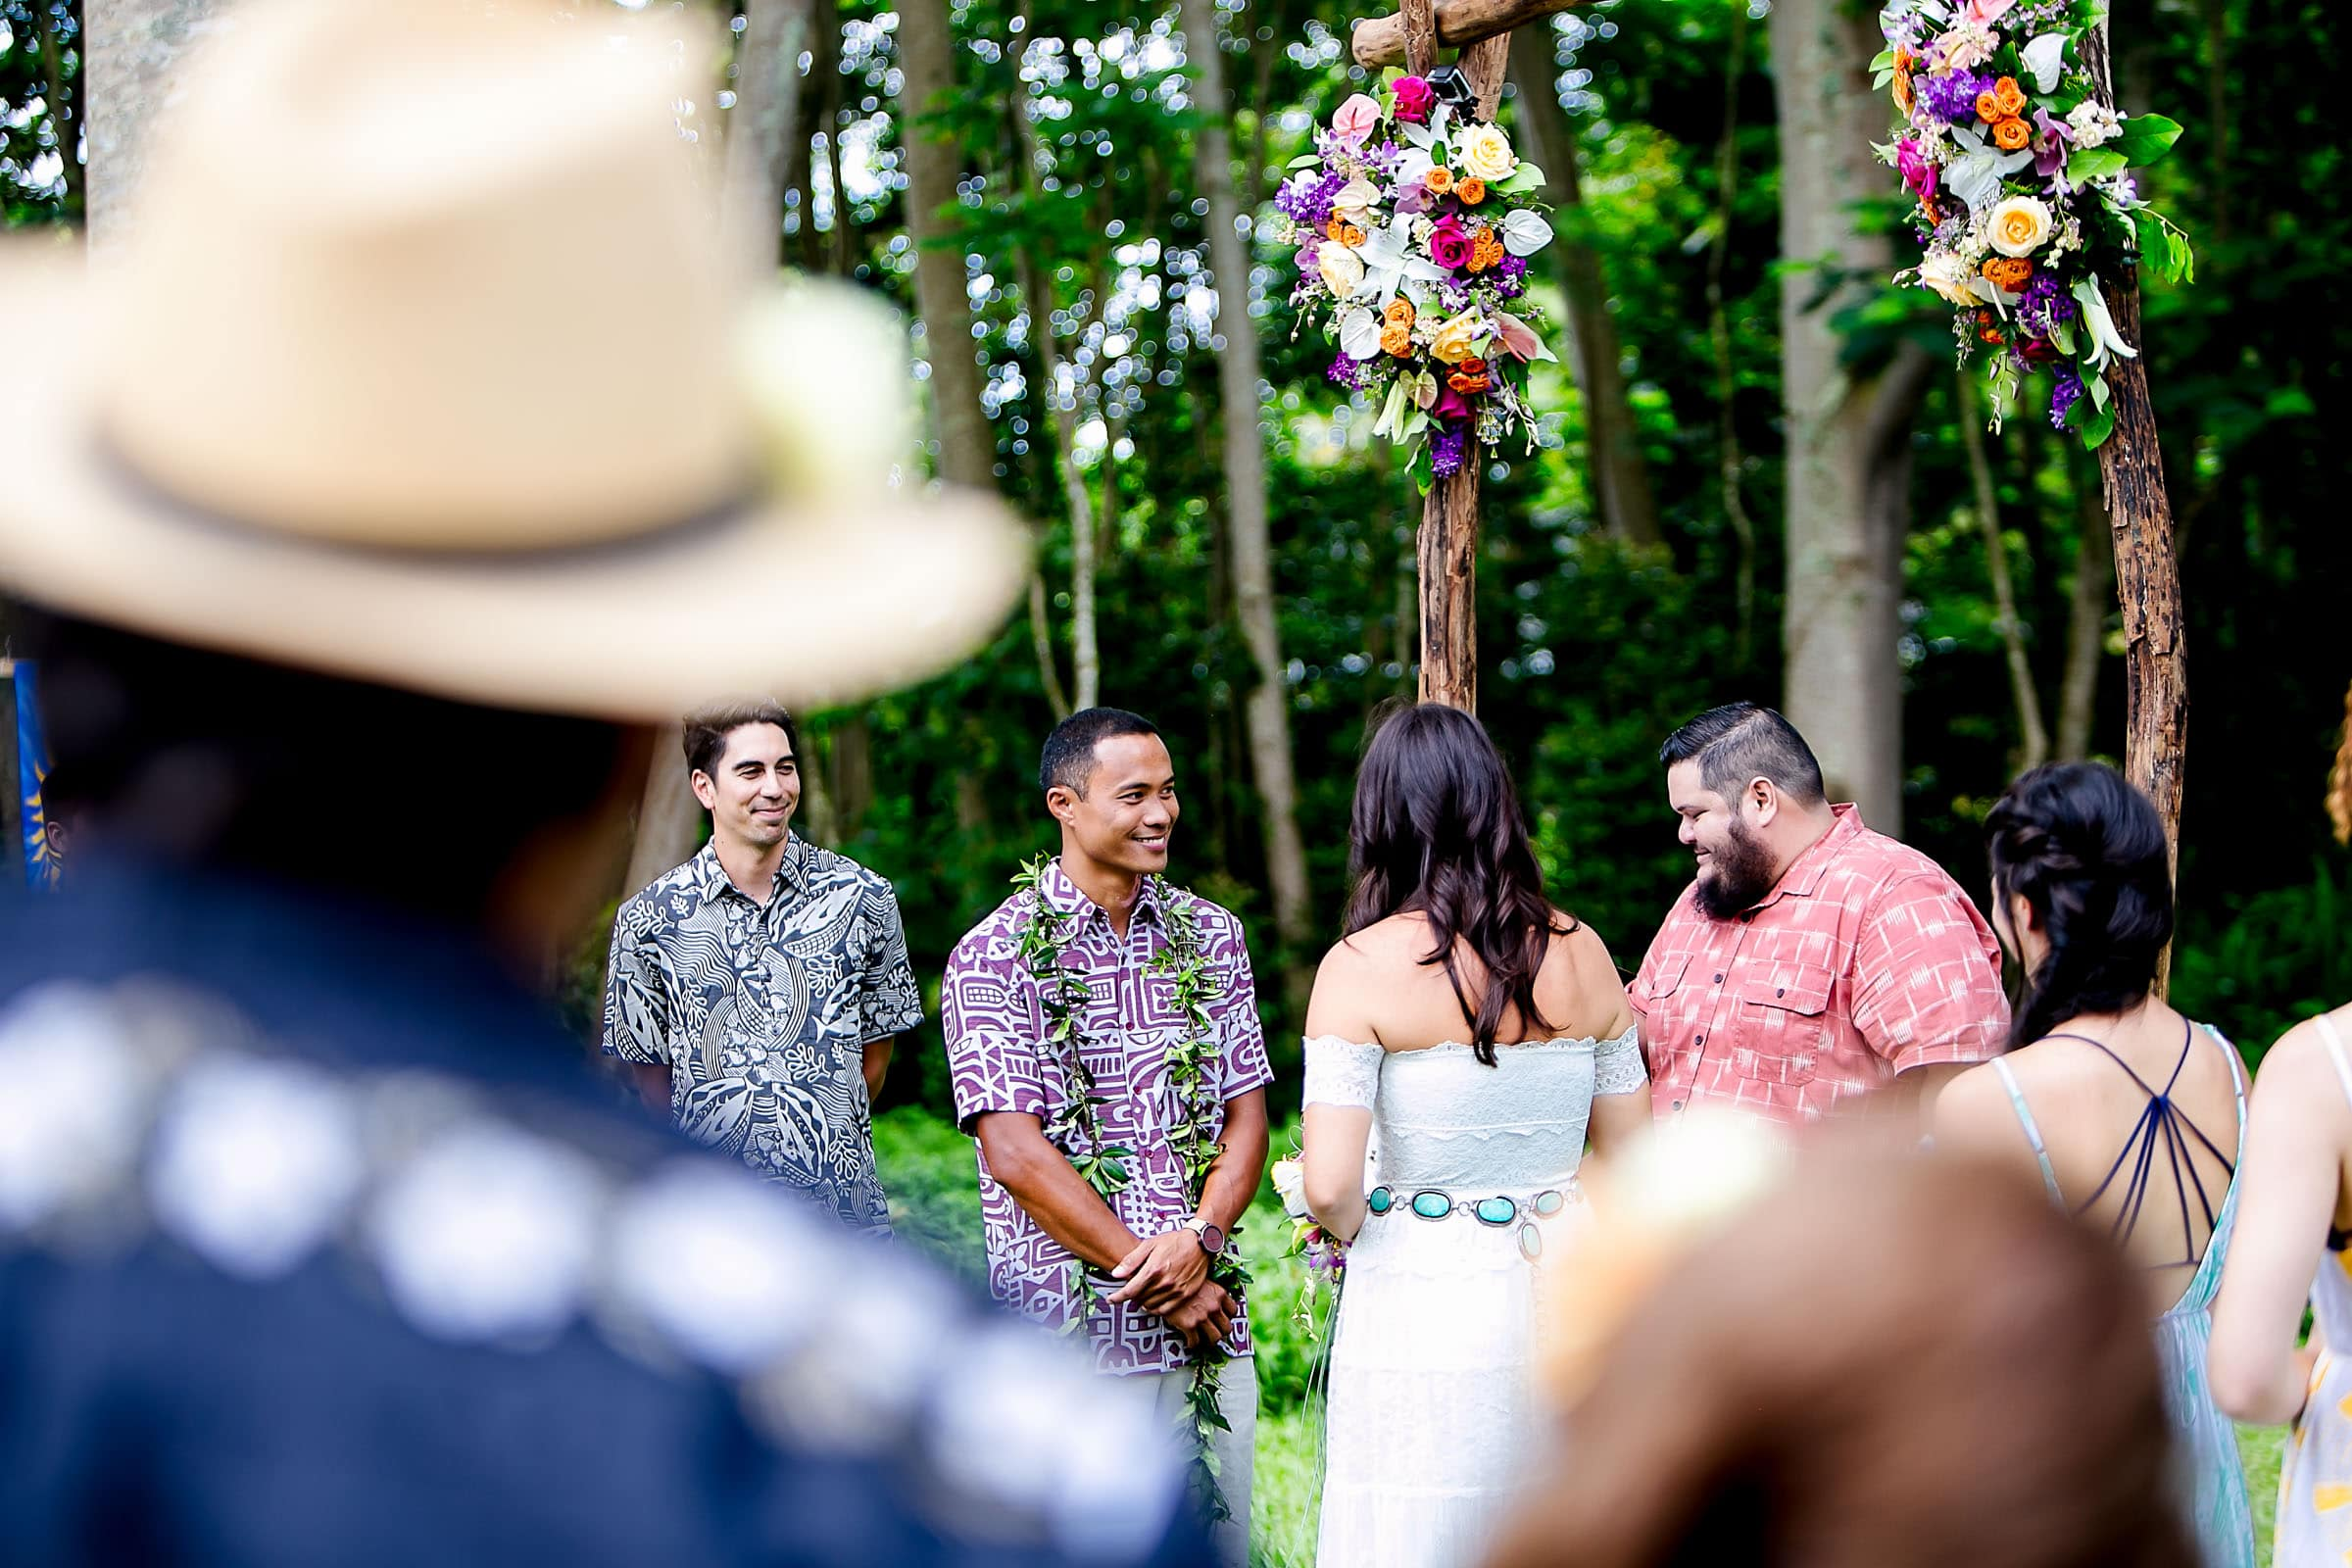 A view through guests on the bride and groom during a Kauai Island wedding ceremony amidst massive majestic acacias trees on a private estate